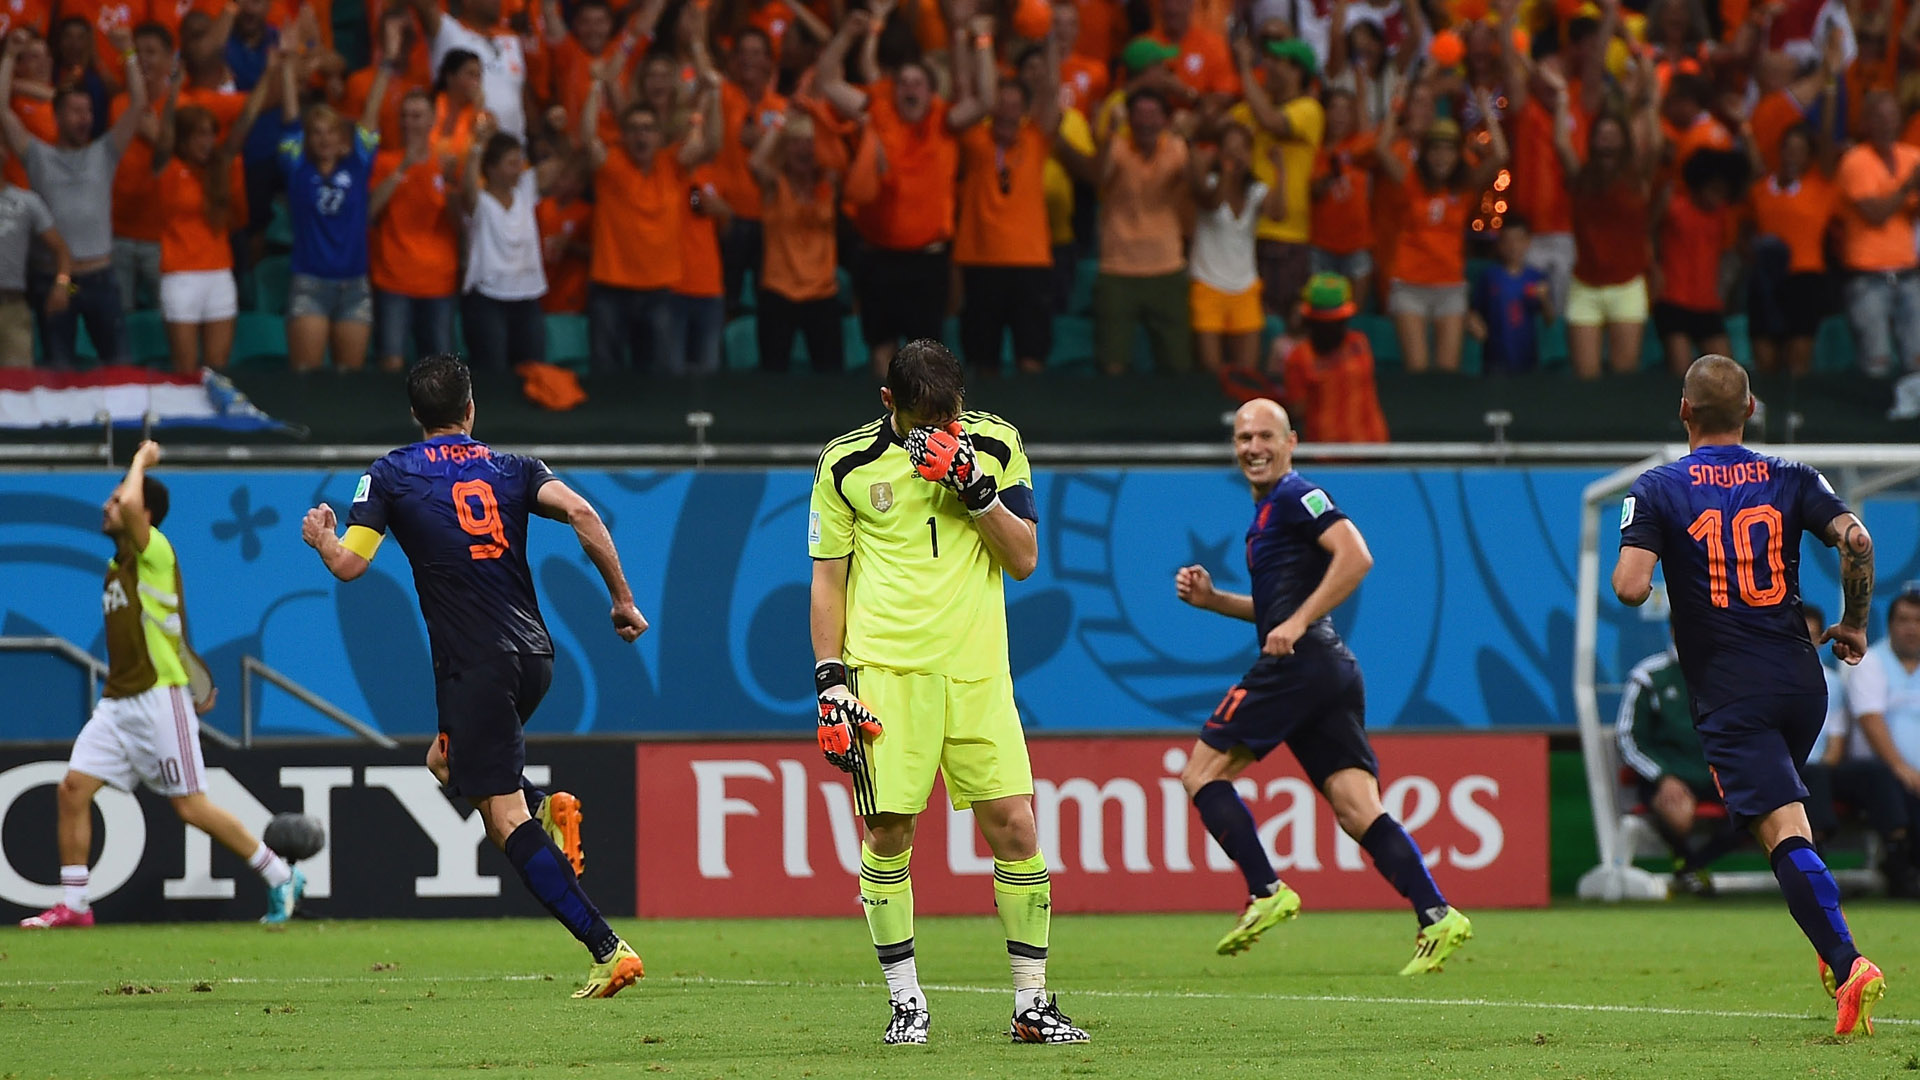 Netherlands Spain World Cup 2014